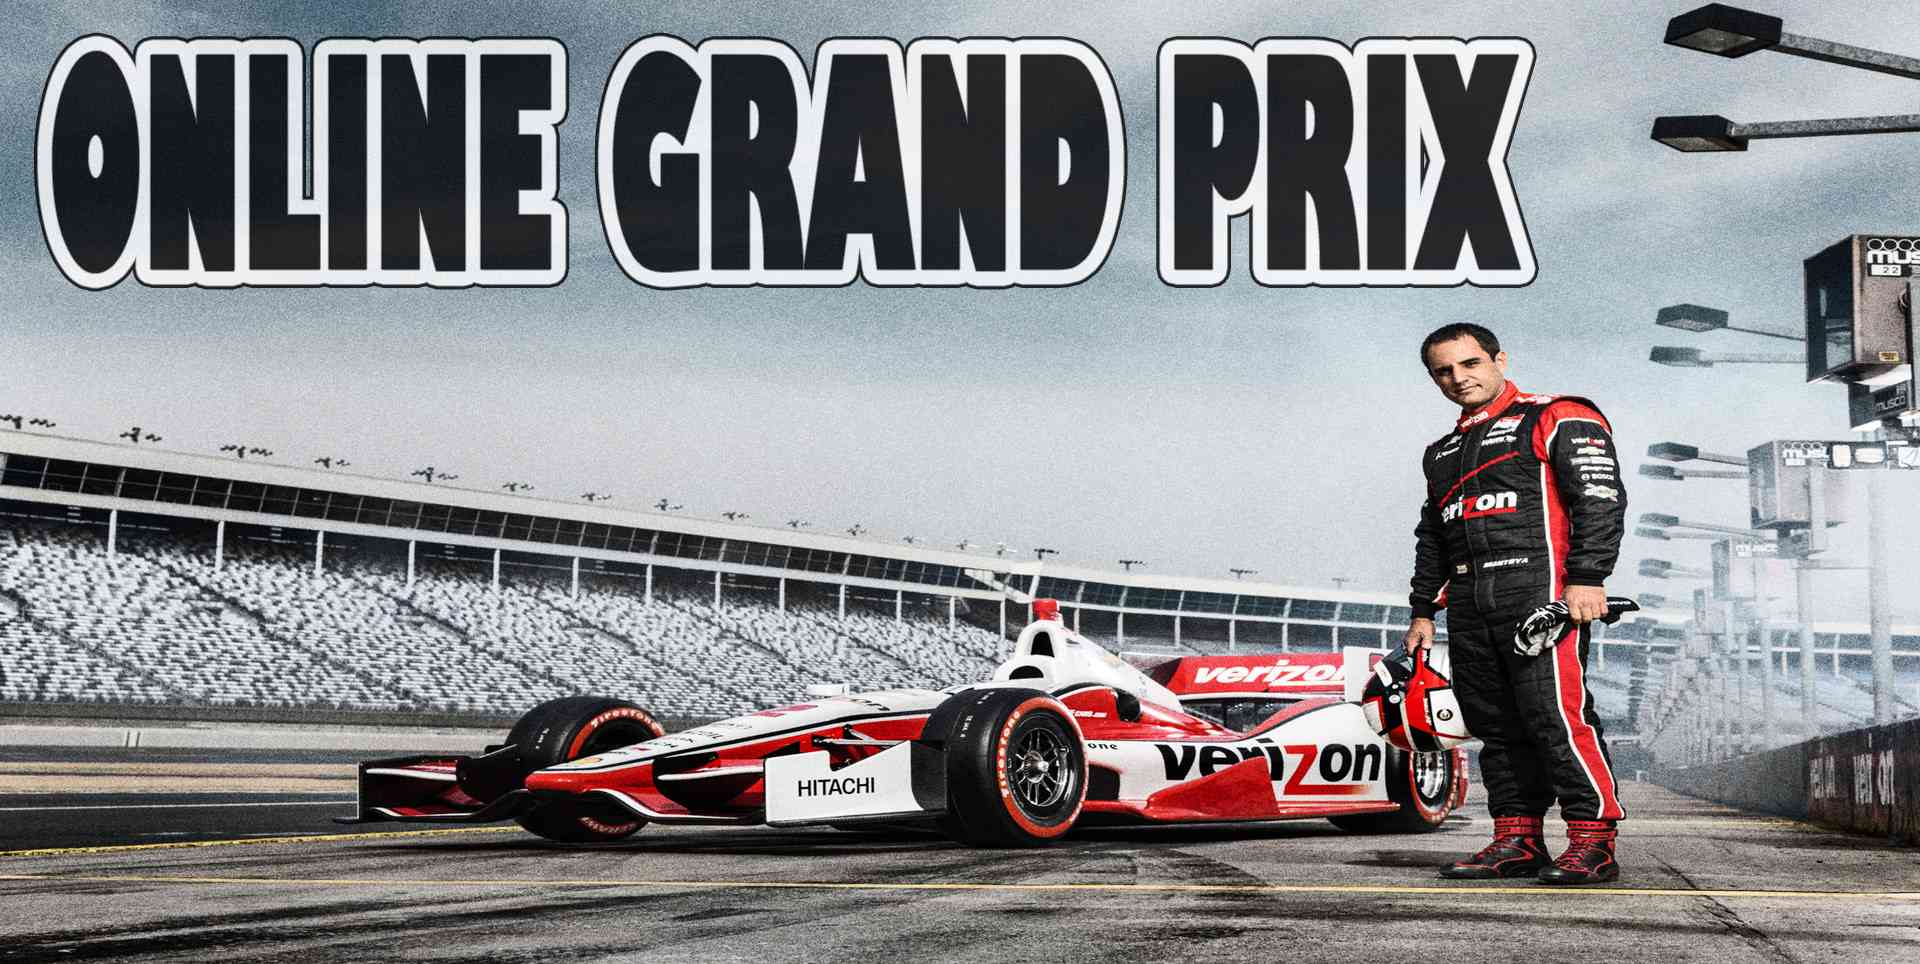 2015-united-states-grand-prix-online